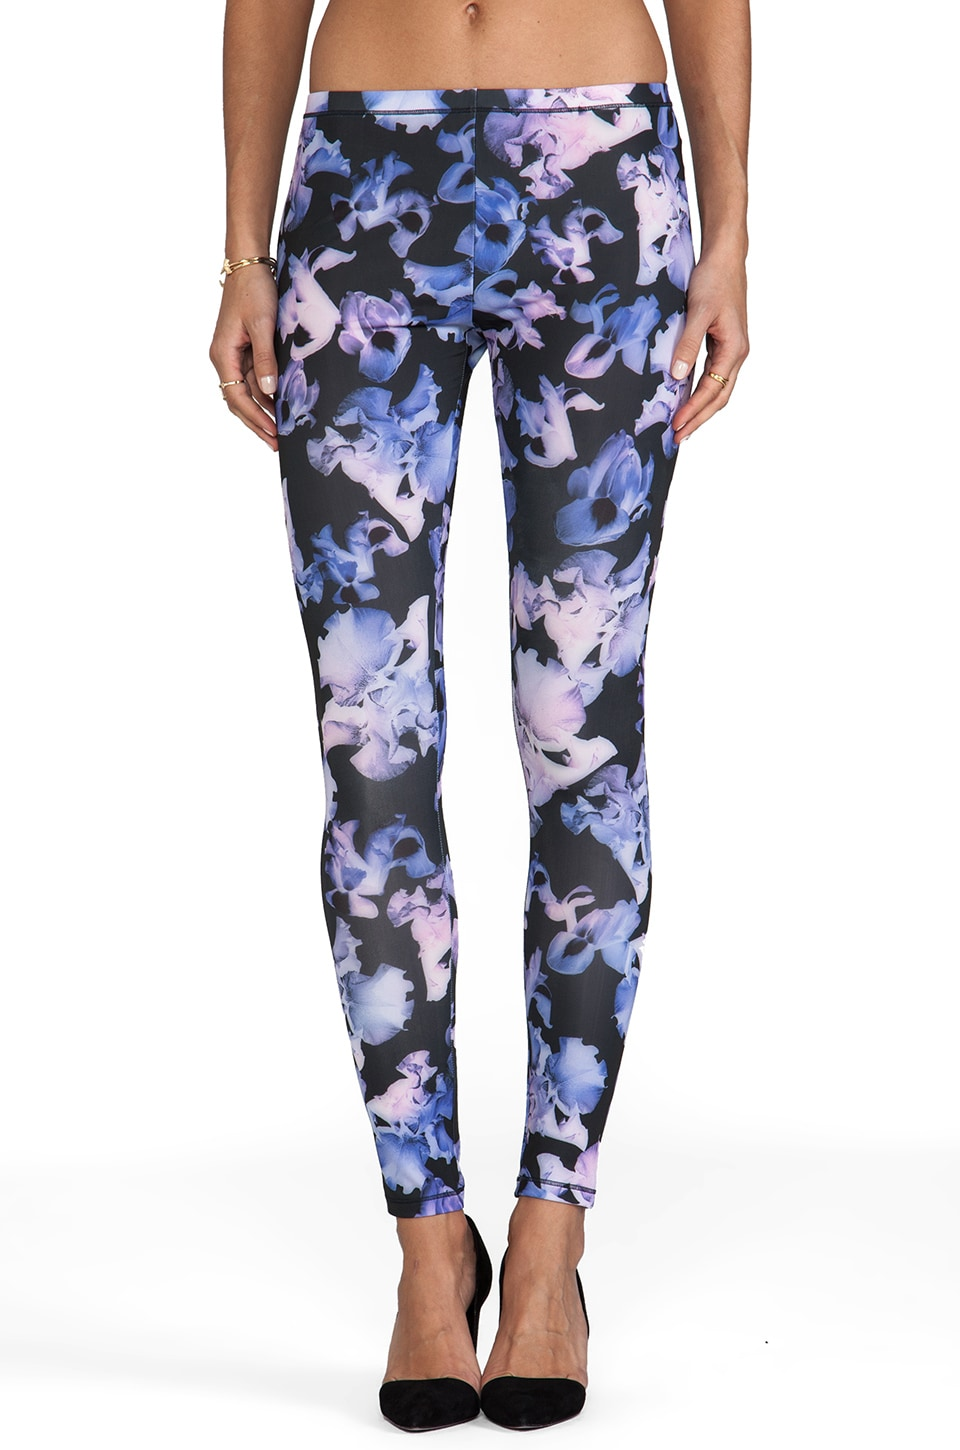 McQ Alexander McQueen Printed Leggings in Black/Cobalt/Pink